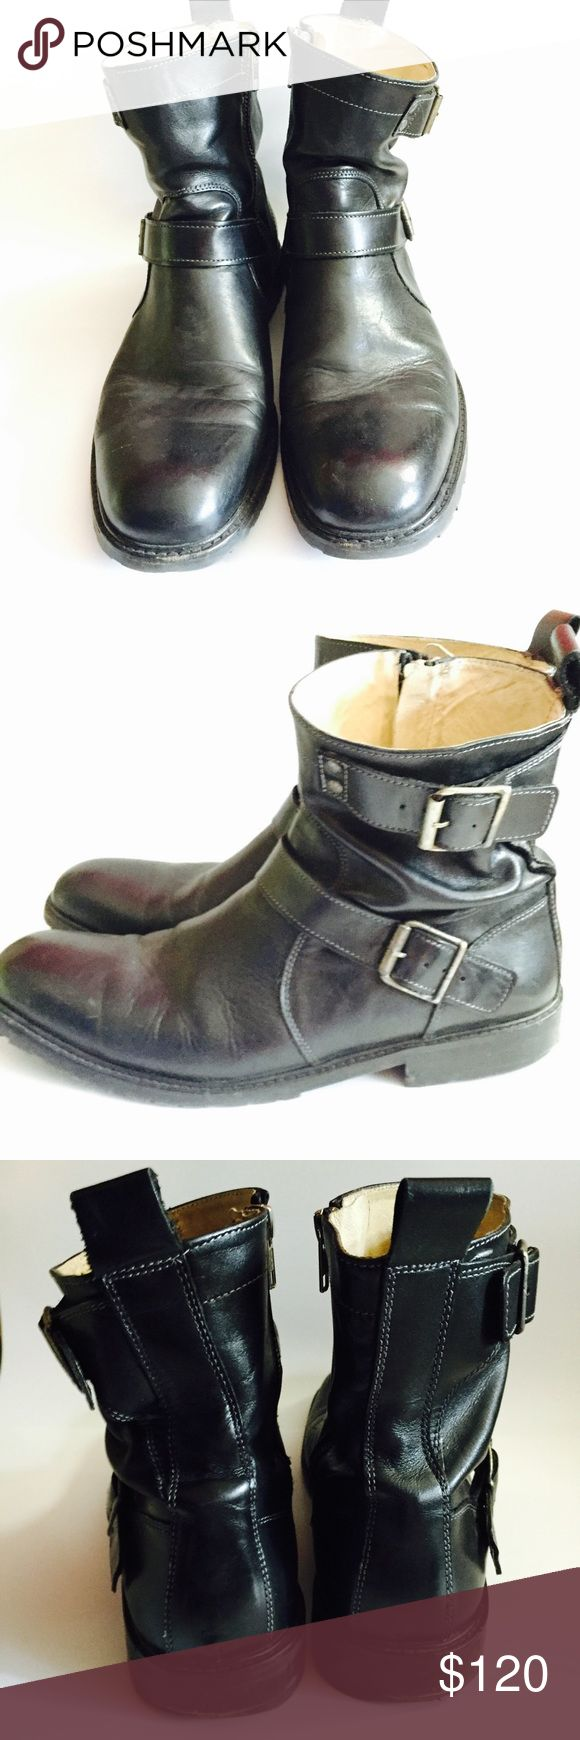 Reiss Men's boots Worn Reiss men's boots. Has signs of wear but no tear and in very good condition. Reiss Shoes Boots